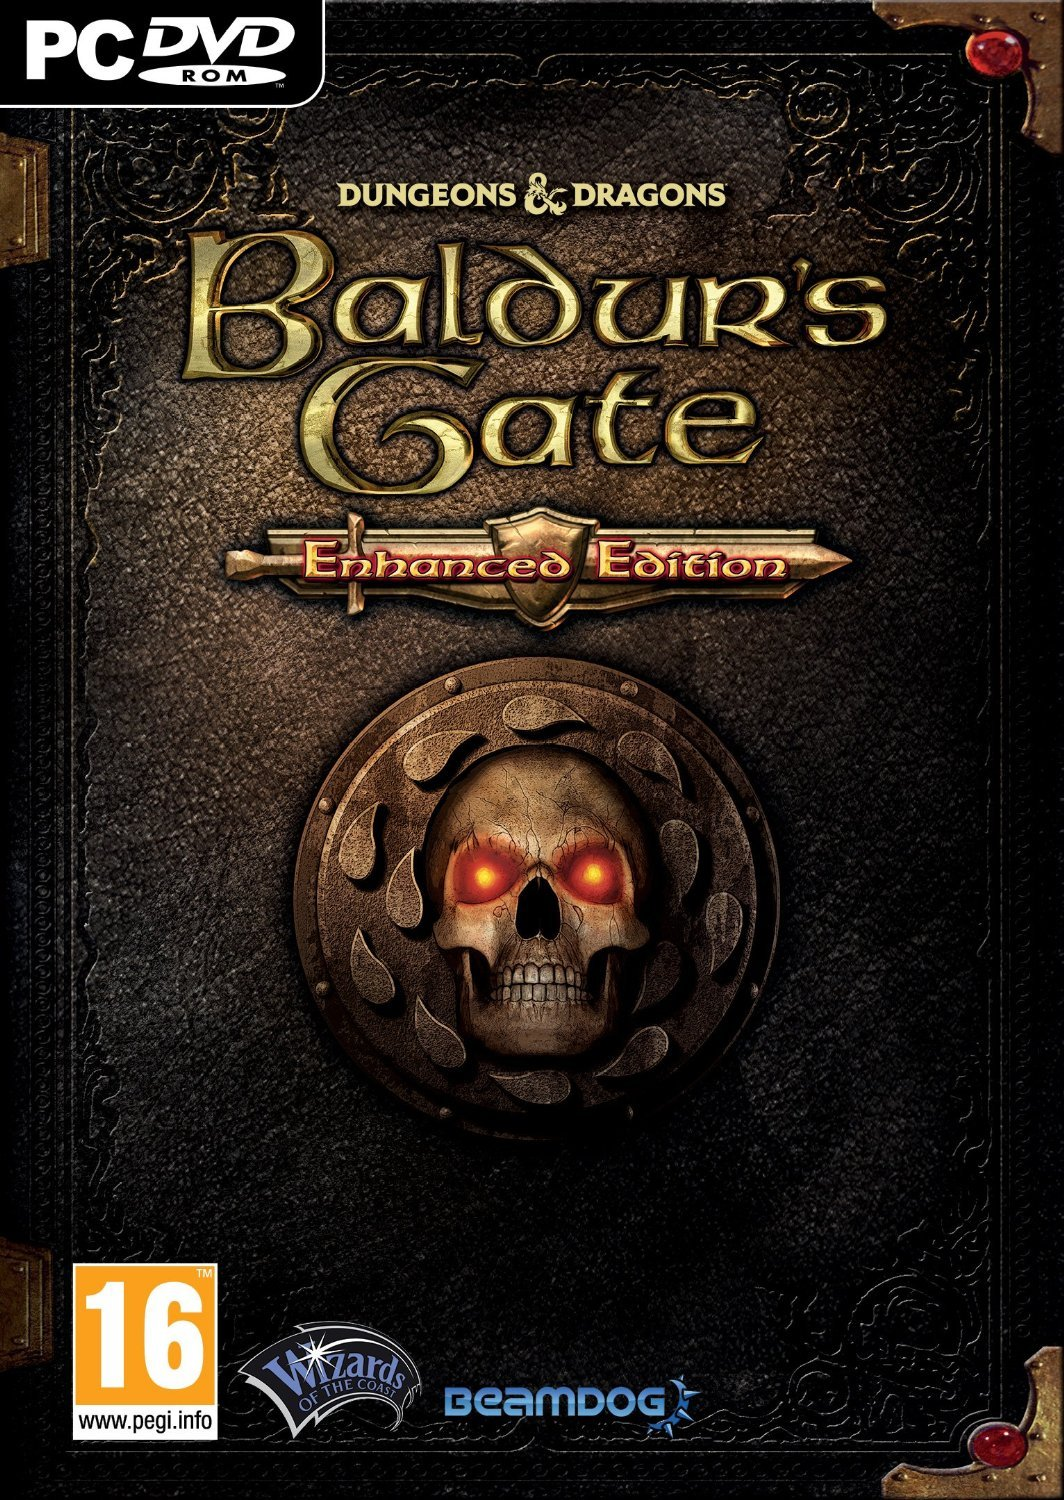 Libros Dungeons And Dragons Baldur's Gate: Enhanced Edition [full Iso] [español] [mg